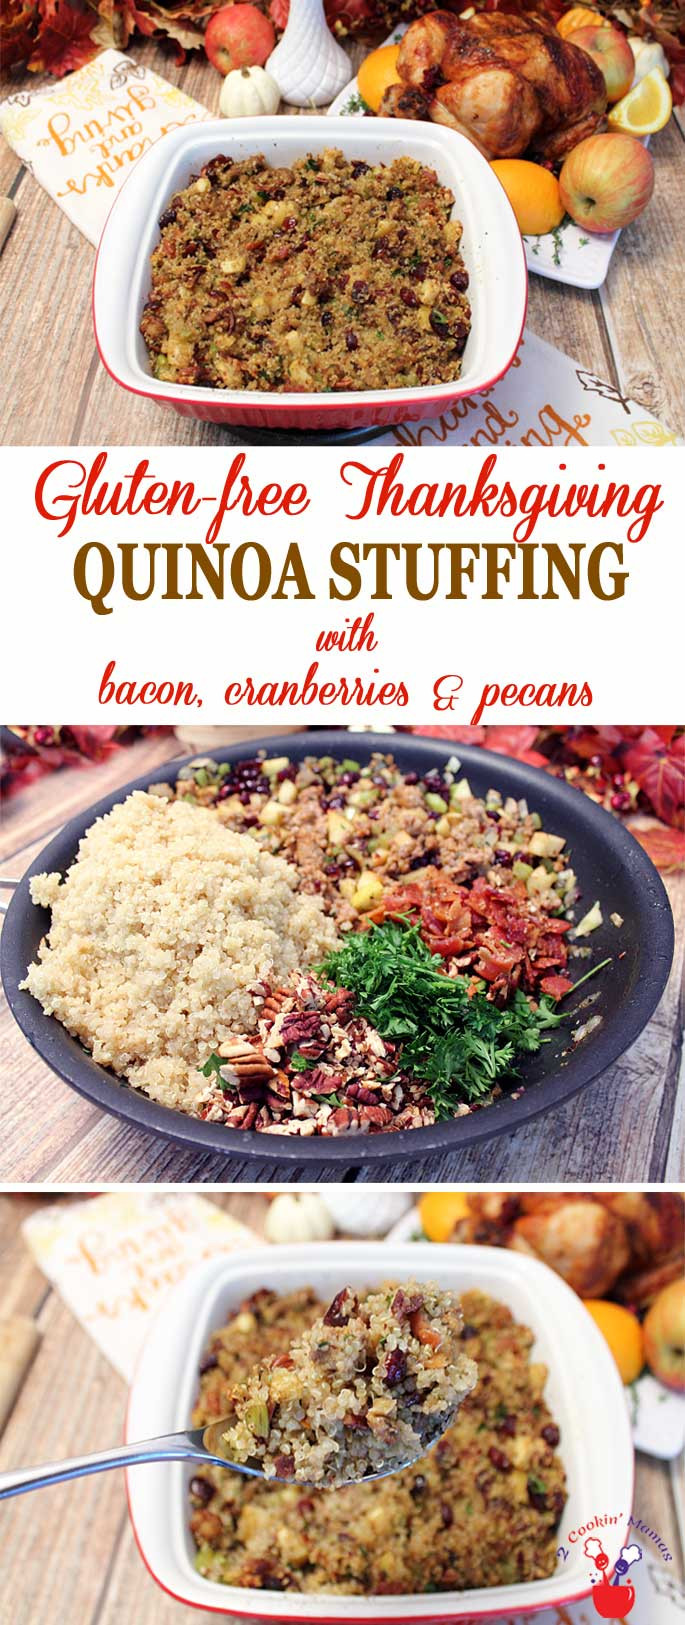 Quinoa Stuffing Thanksgiving  Thanksgiving Dinner with Gluten Free Quinoa Stuffing 2